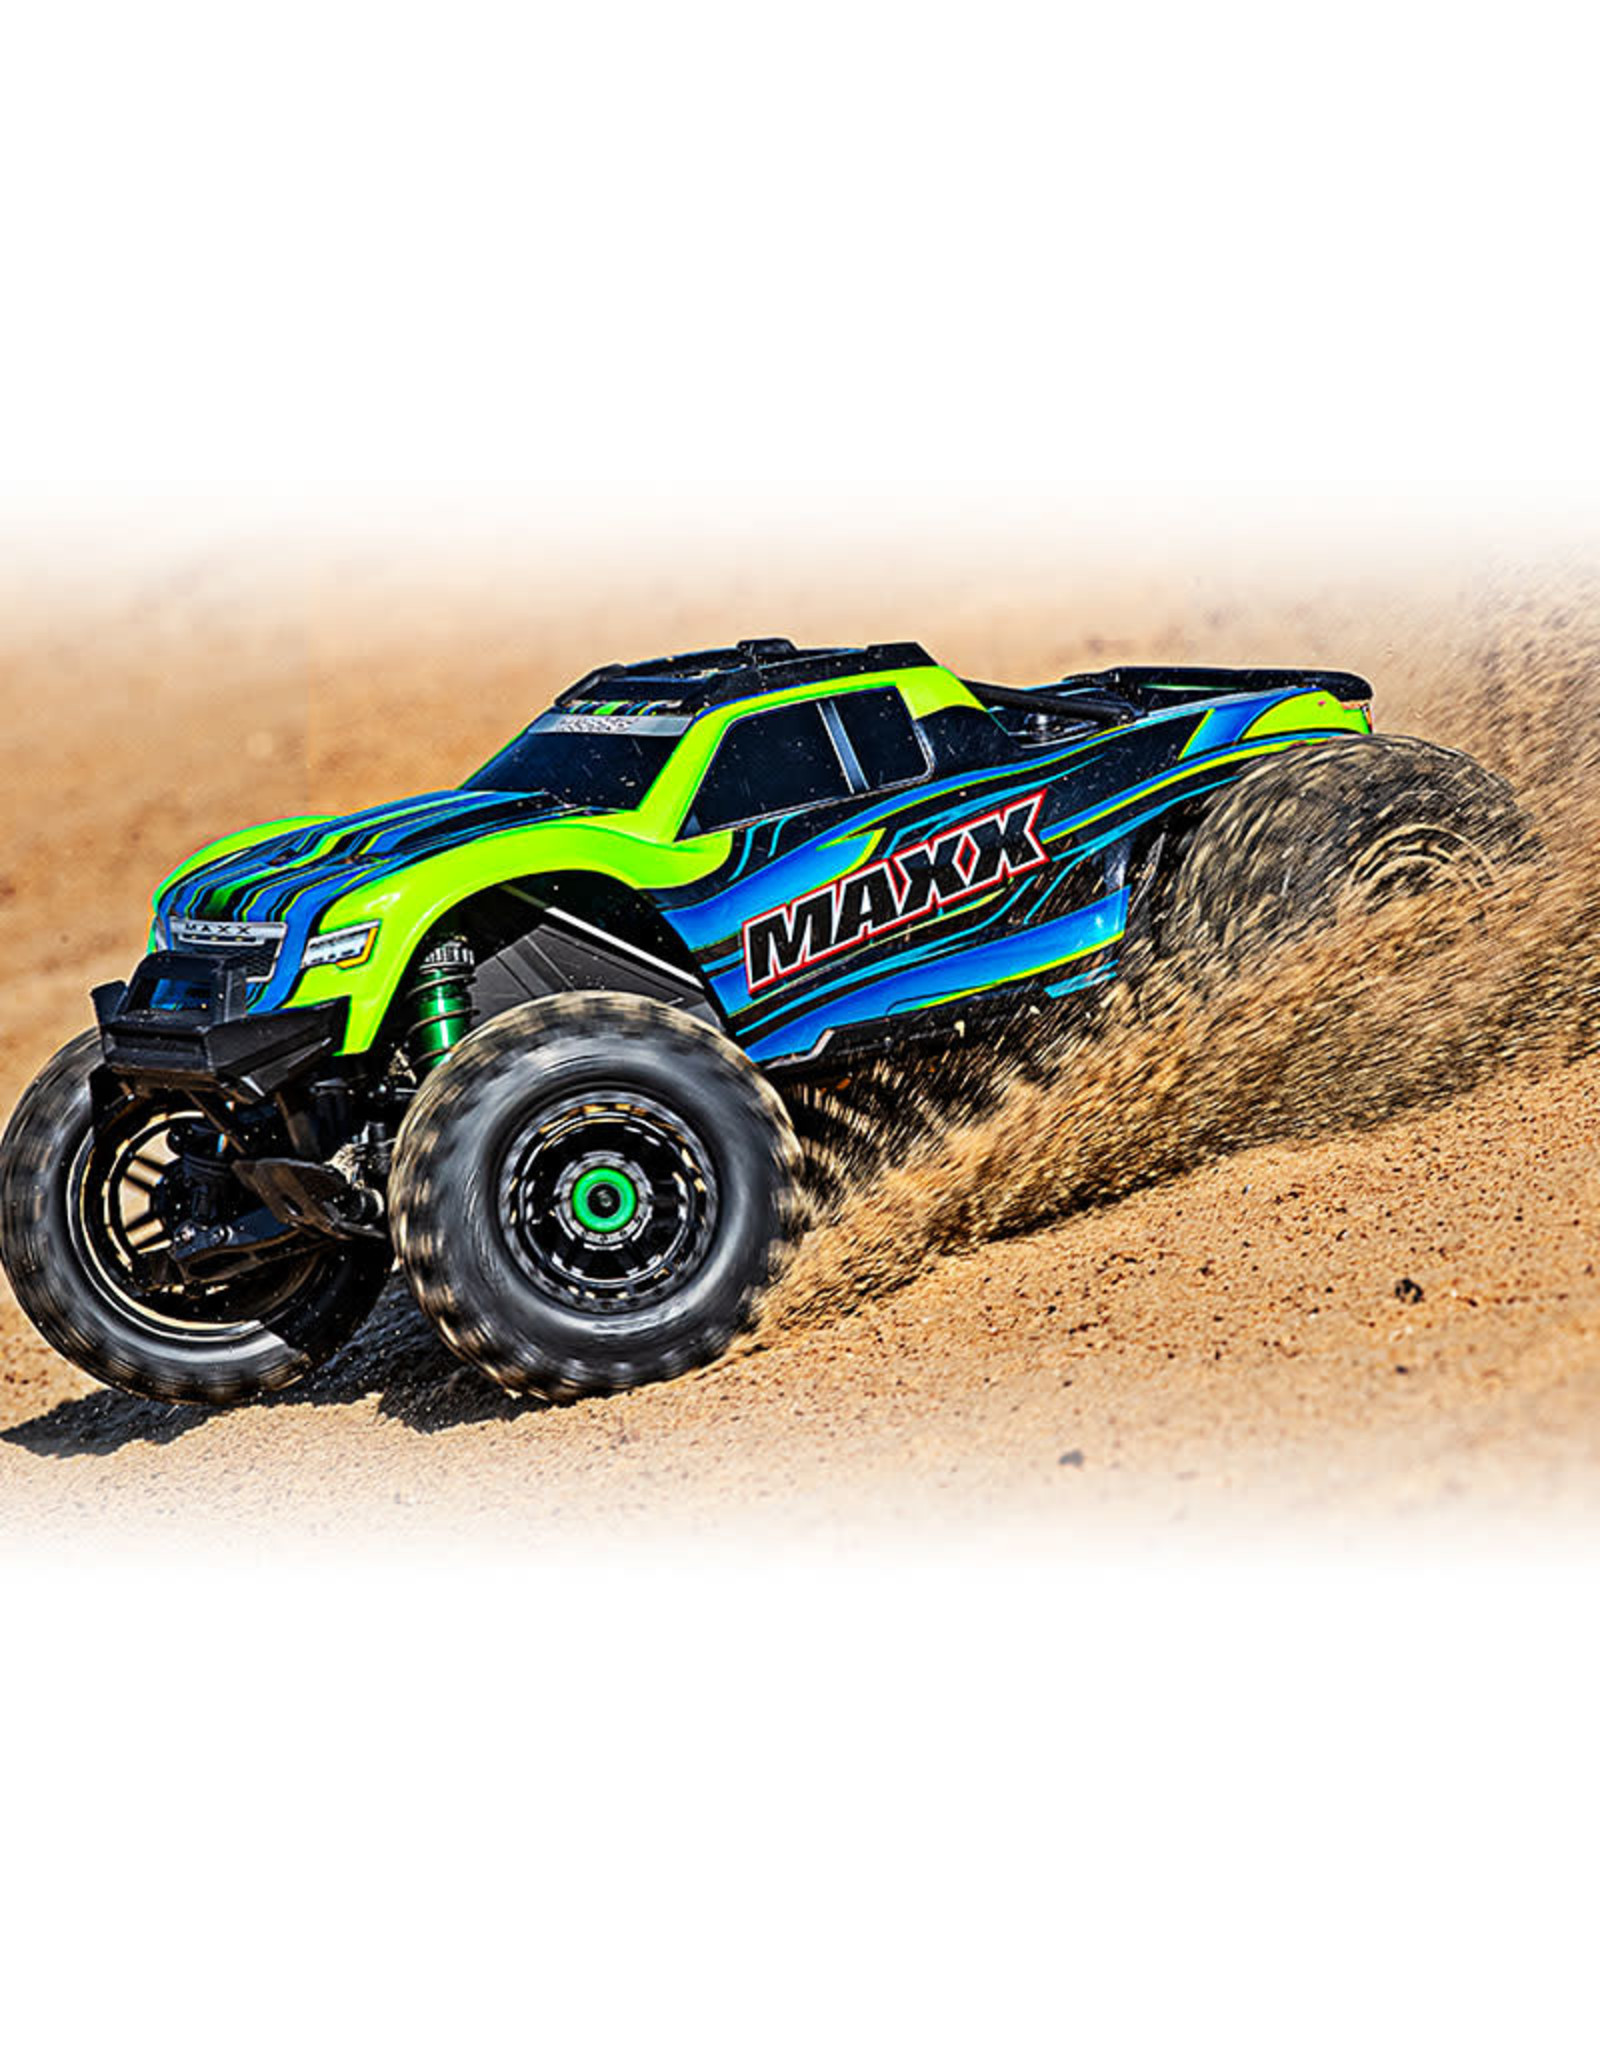 Traxxas Maxx: 1/10 4WD 4S-Capable Brushless Truck (GREEN)(89076-4)